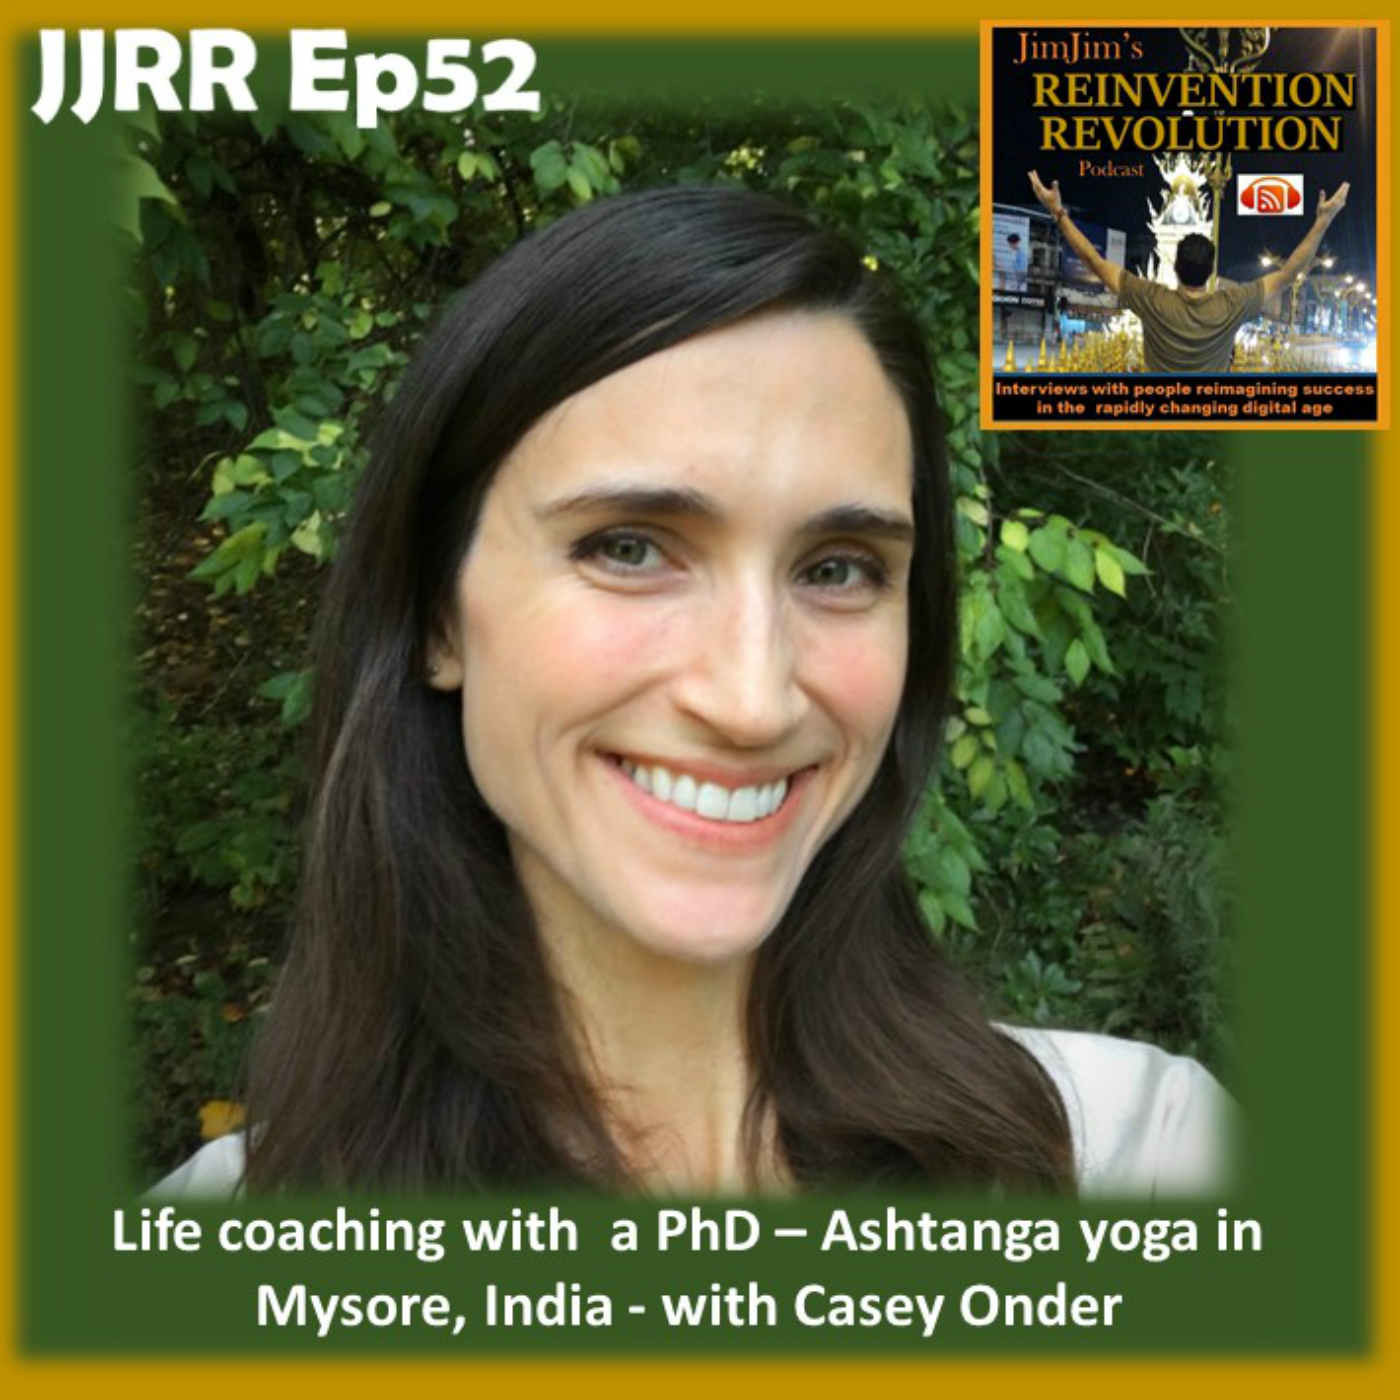 JJRR Ep52 Life coaching with a PhD – Ashtanga yoga in Mysore, India – with Casey Onder